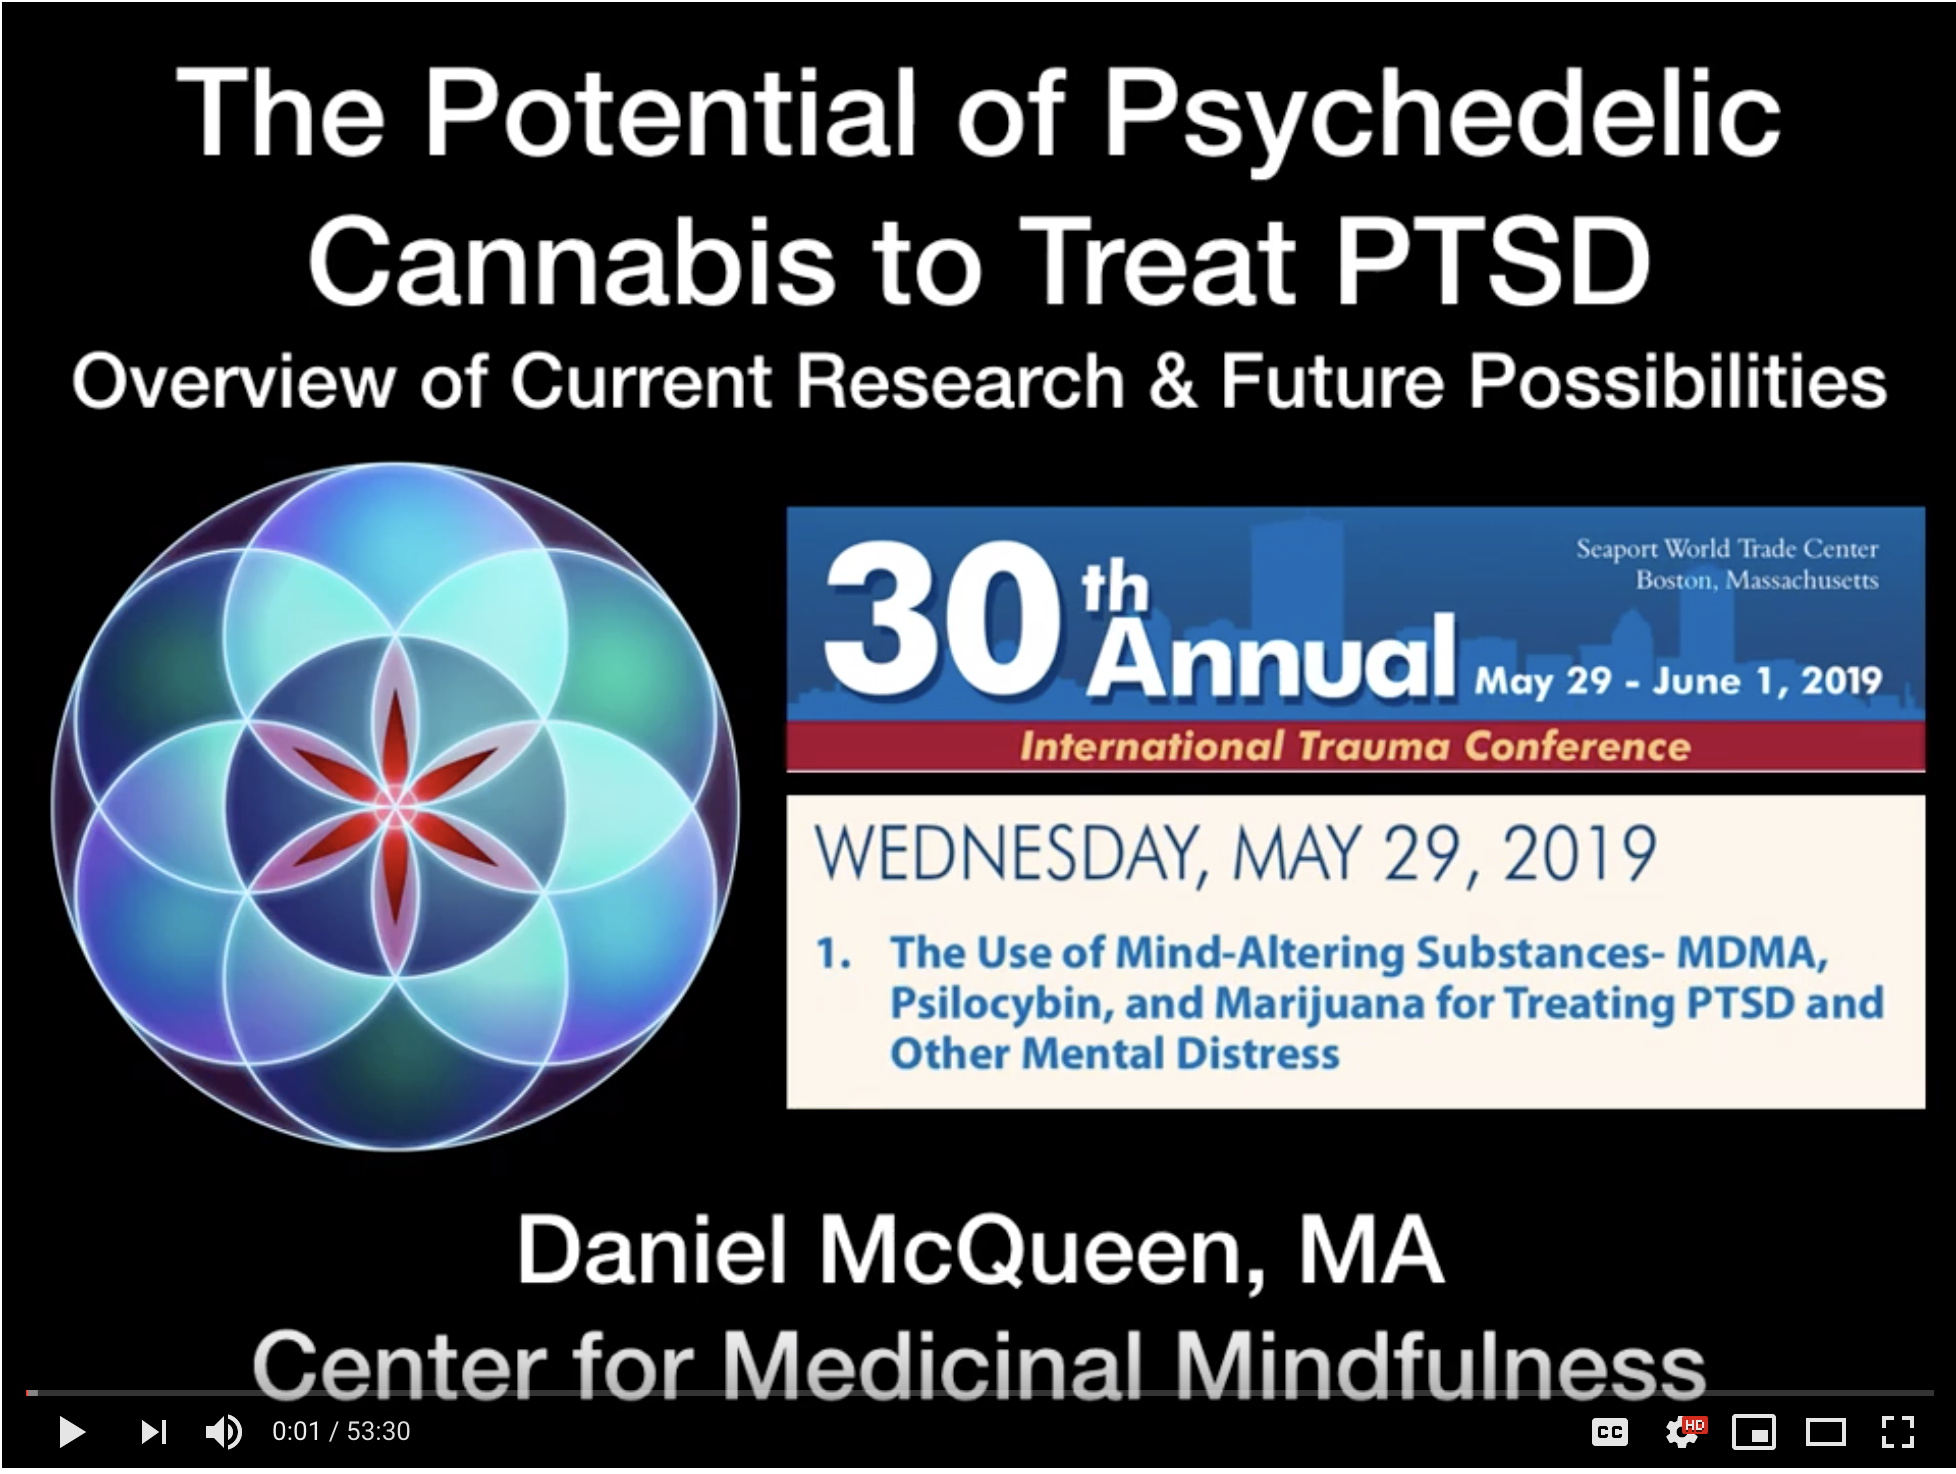 International Trauma Conference - Daniel McQueen, MA, Executive Director of the Center for Medicinal Mindfulness, speaks to the theory and practice of Cannabis Assisted Psychedelic Therapy and Cannabis Assisted Psychotherapy and how psychedelic cannabis can be used to treat trauma, PTSD and other clinical disorders.